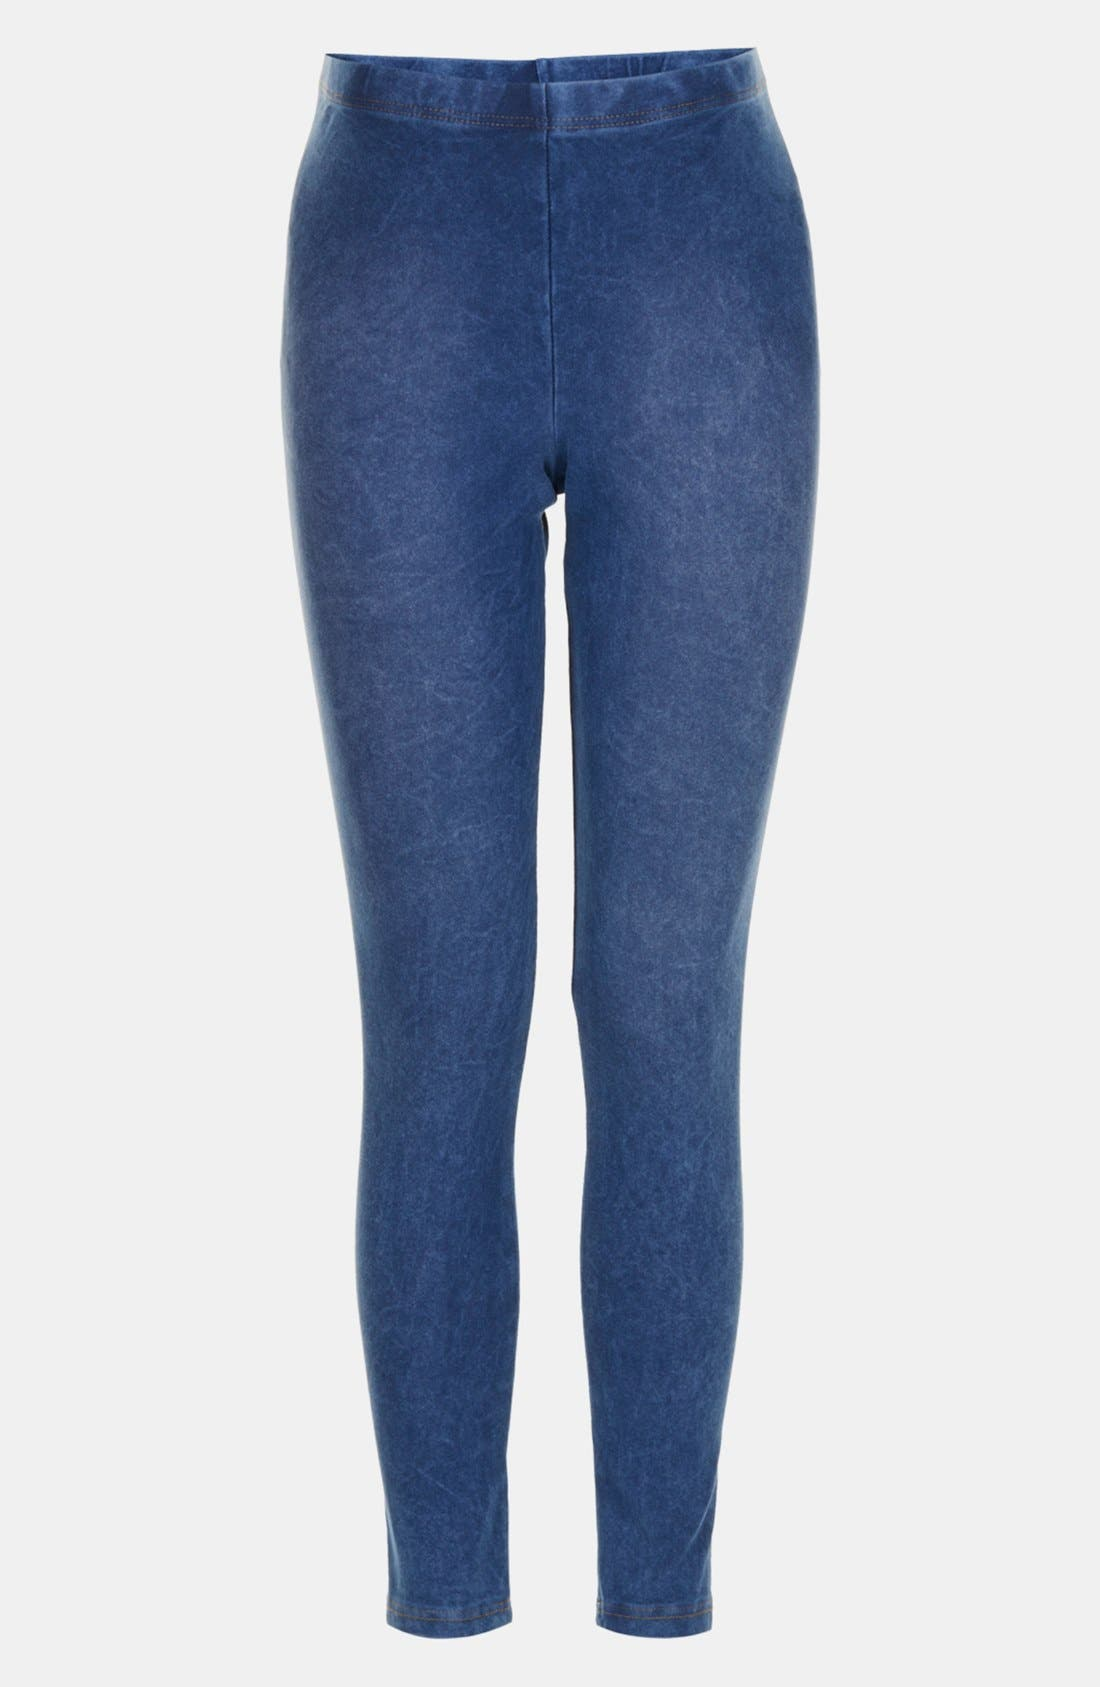 Alternate Image 1 Selected - Topshop Acid Wash Maternity Leggings